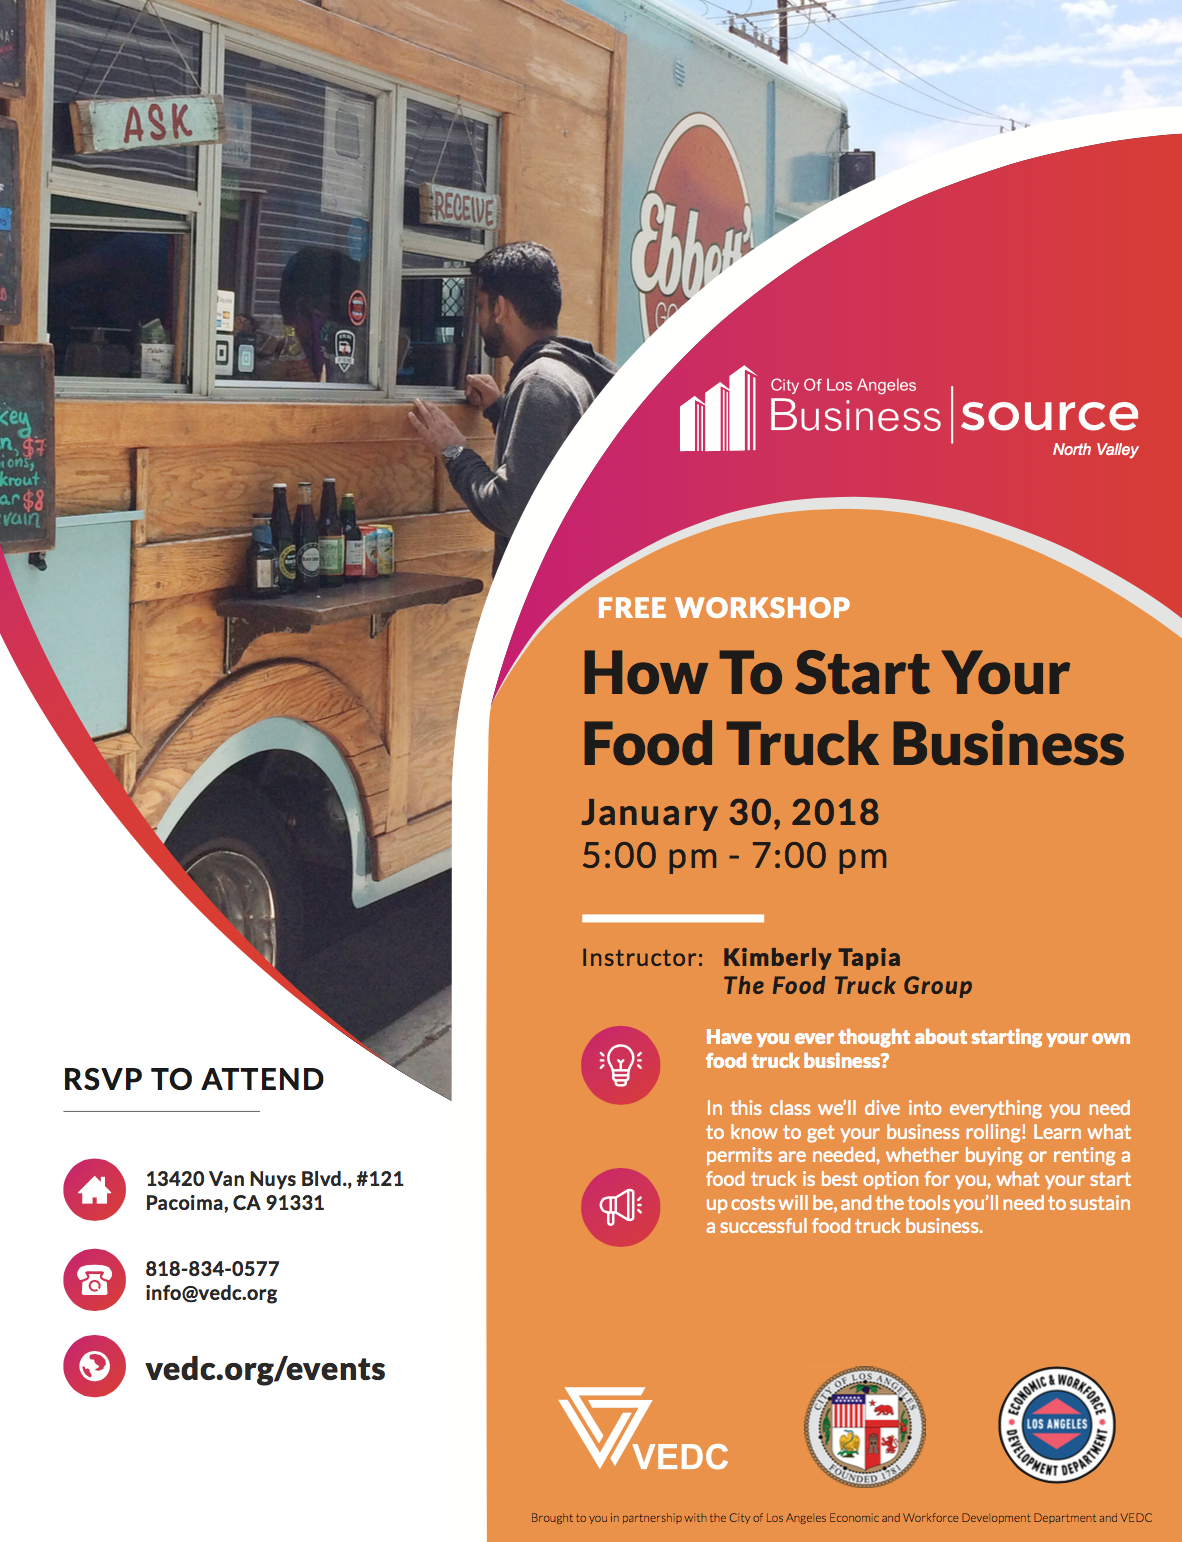 Jan 30 How To Start Your Food Truck Business Free Workshop The